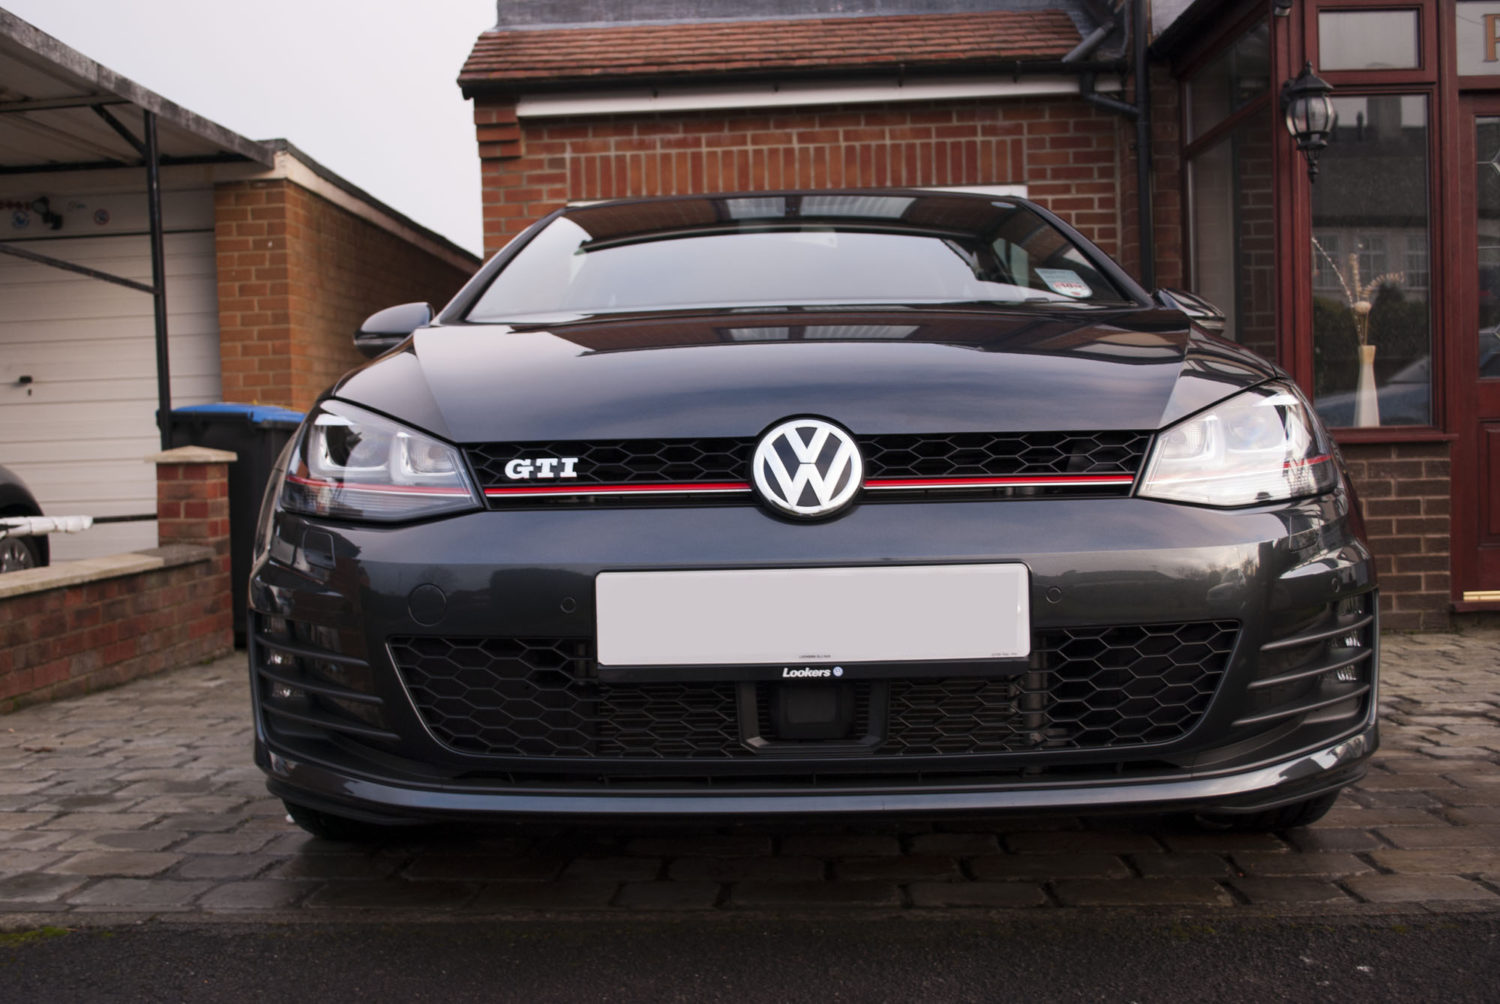 Volkswagen Golf GTI Detailed by DWR Detailing